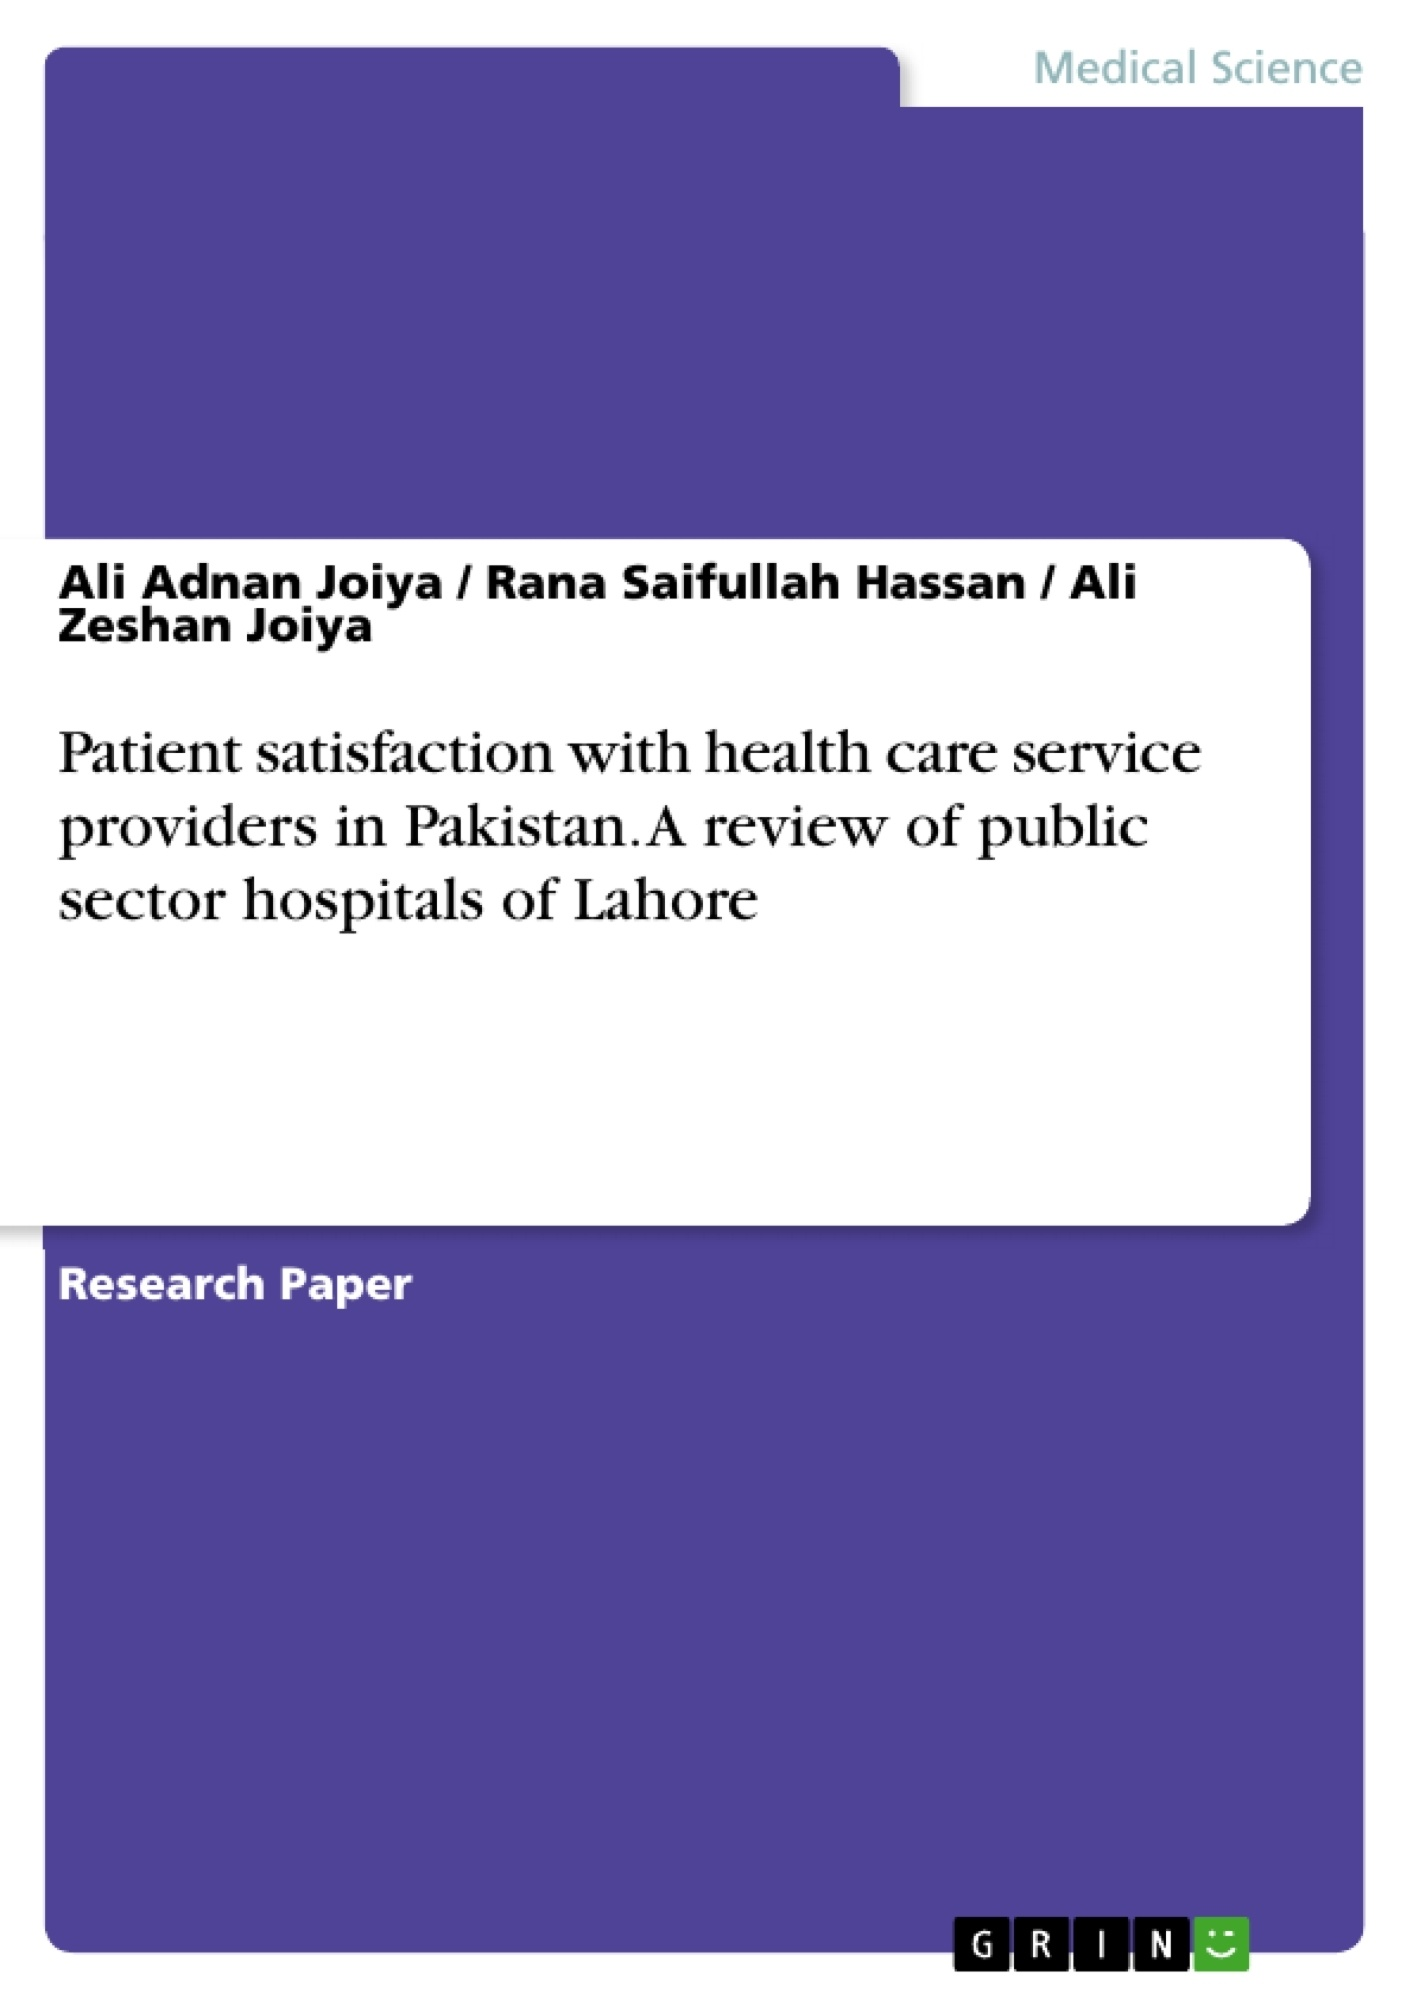 dissertation health patient public satisfaction service Patient satisfaction data can be extensively used in various ways within a health care organization and also by other entities outside that organization such as accreditation agencies, business coalitions, and health plans.